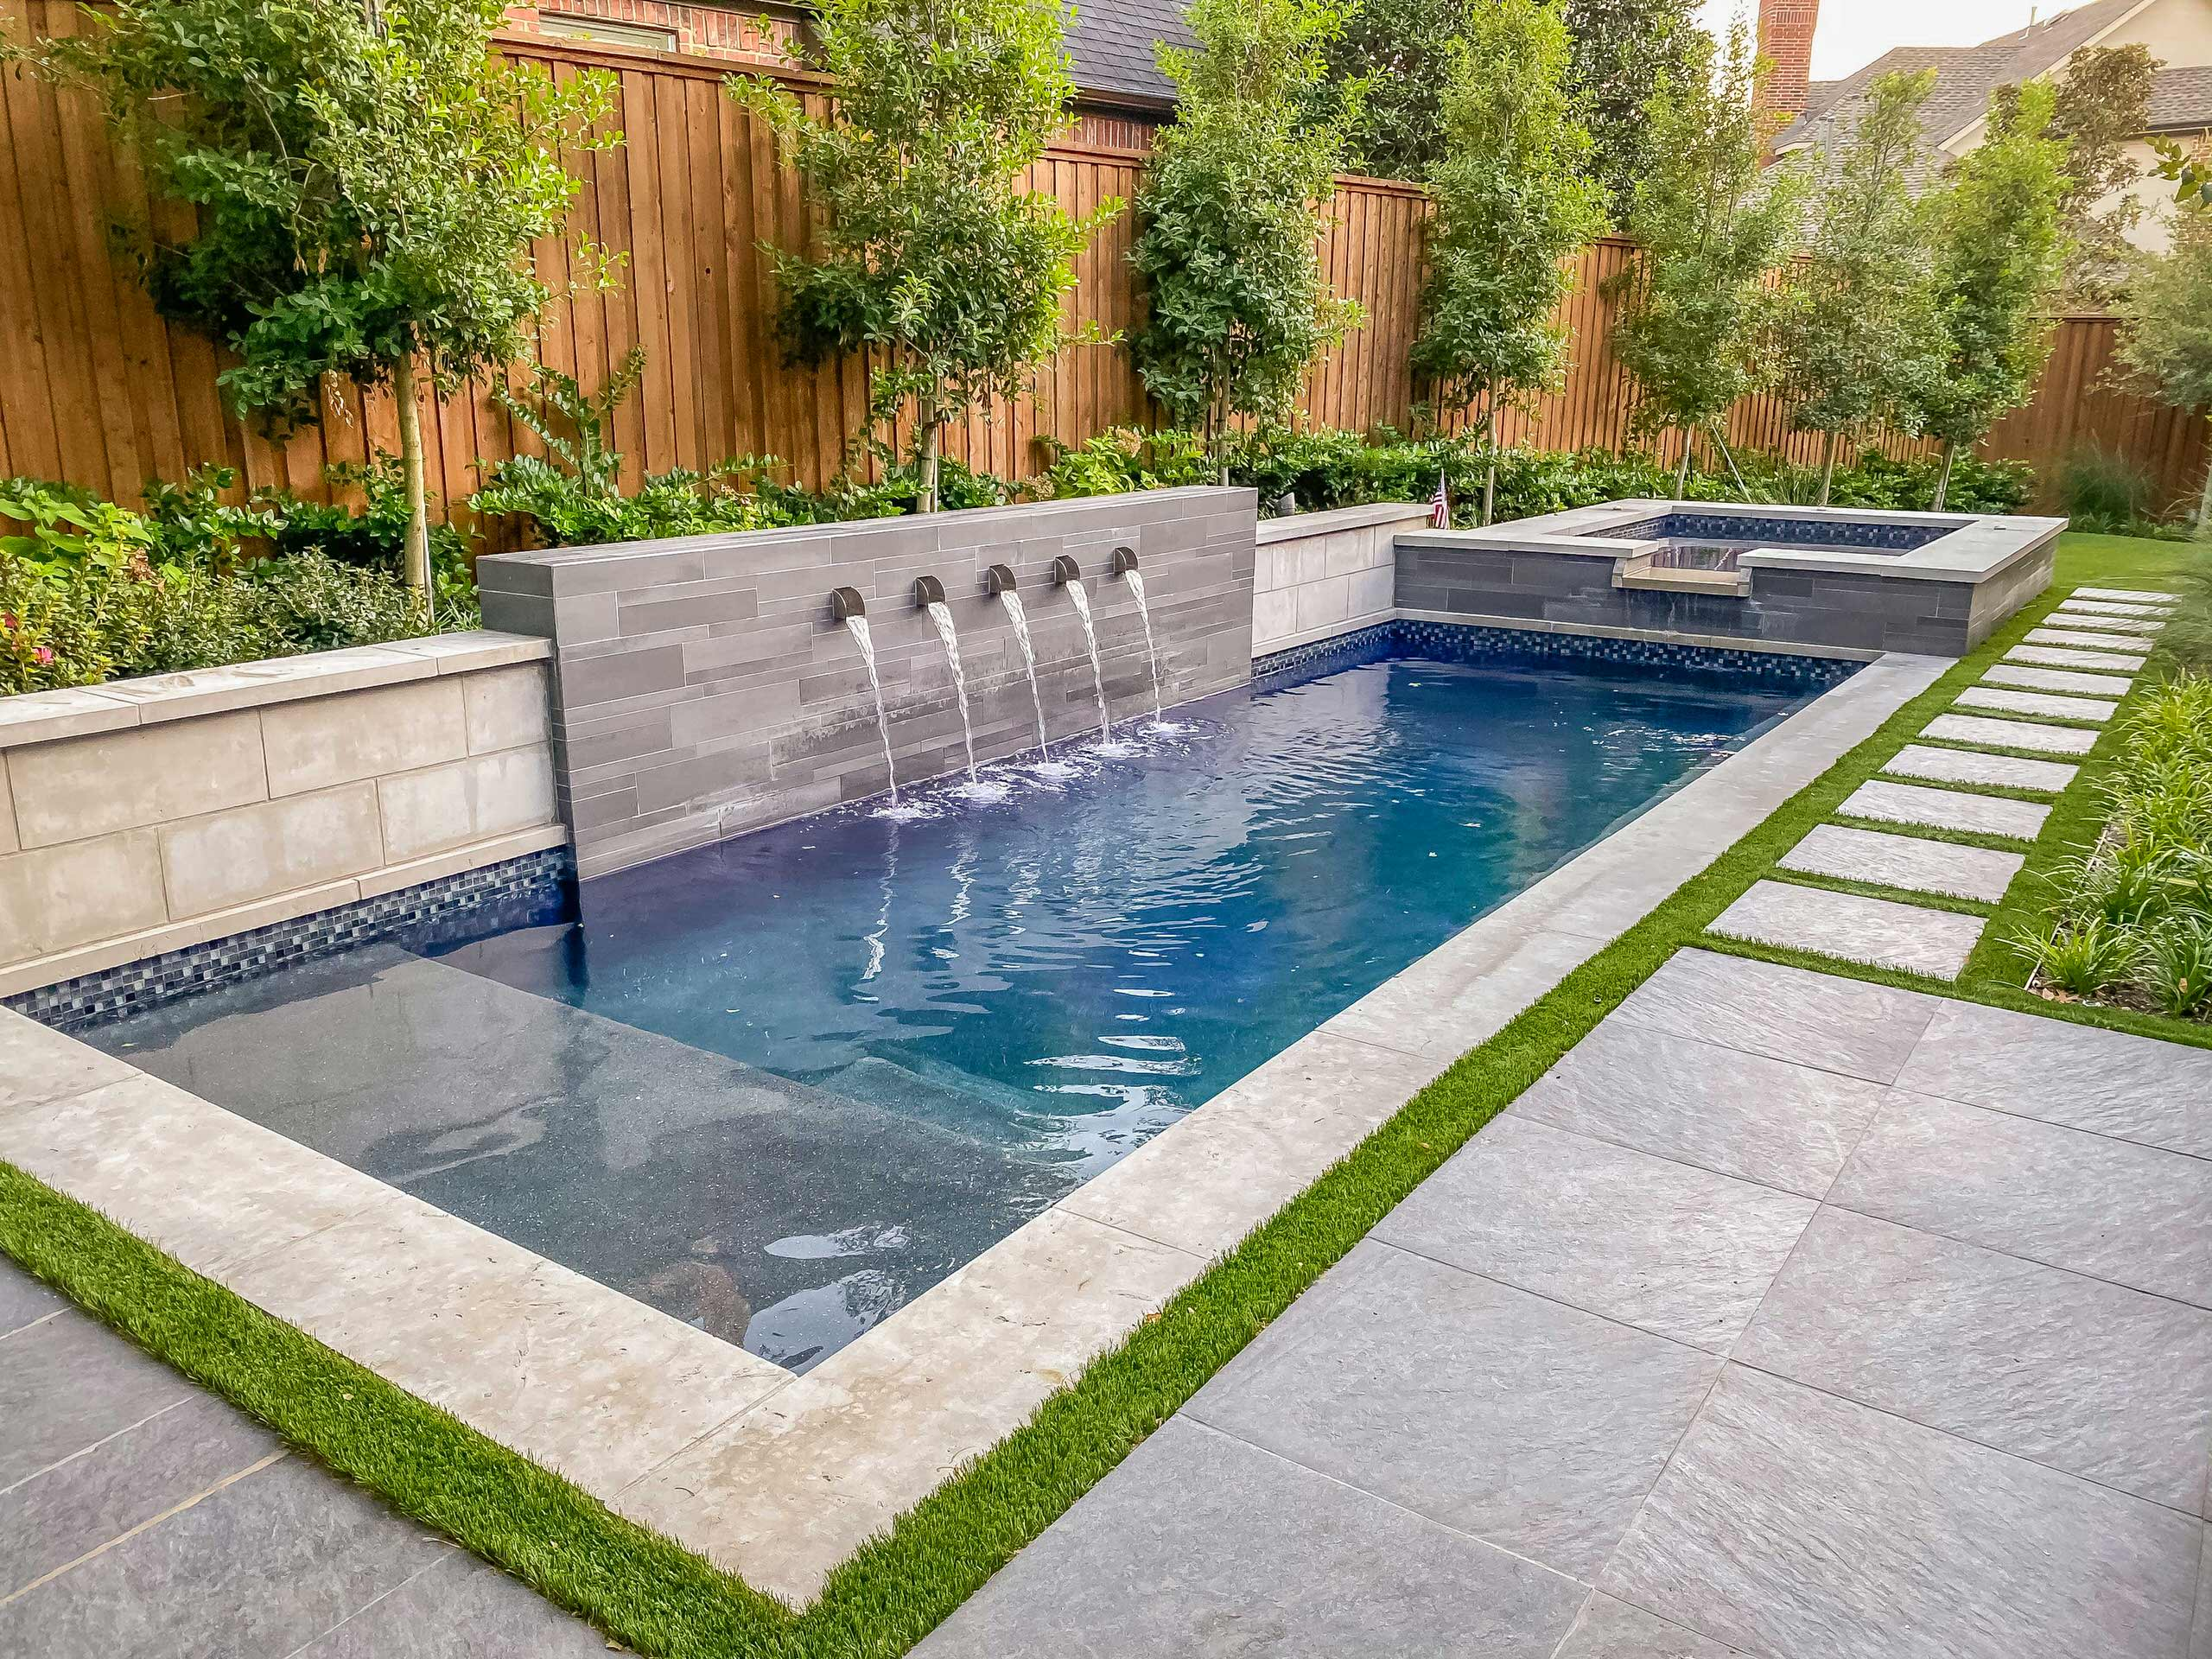 19 Beautiful Pool Pictures & Ideas - September, 19  Houzz